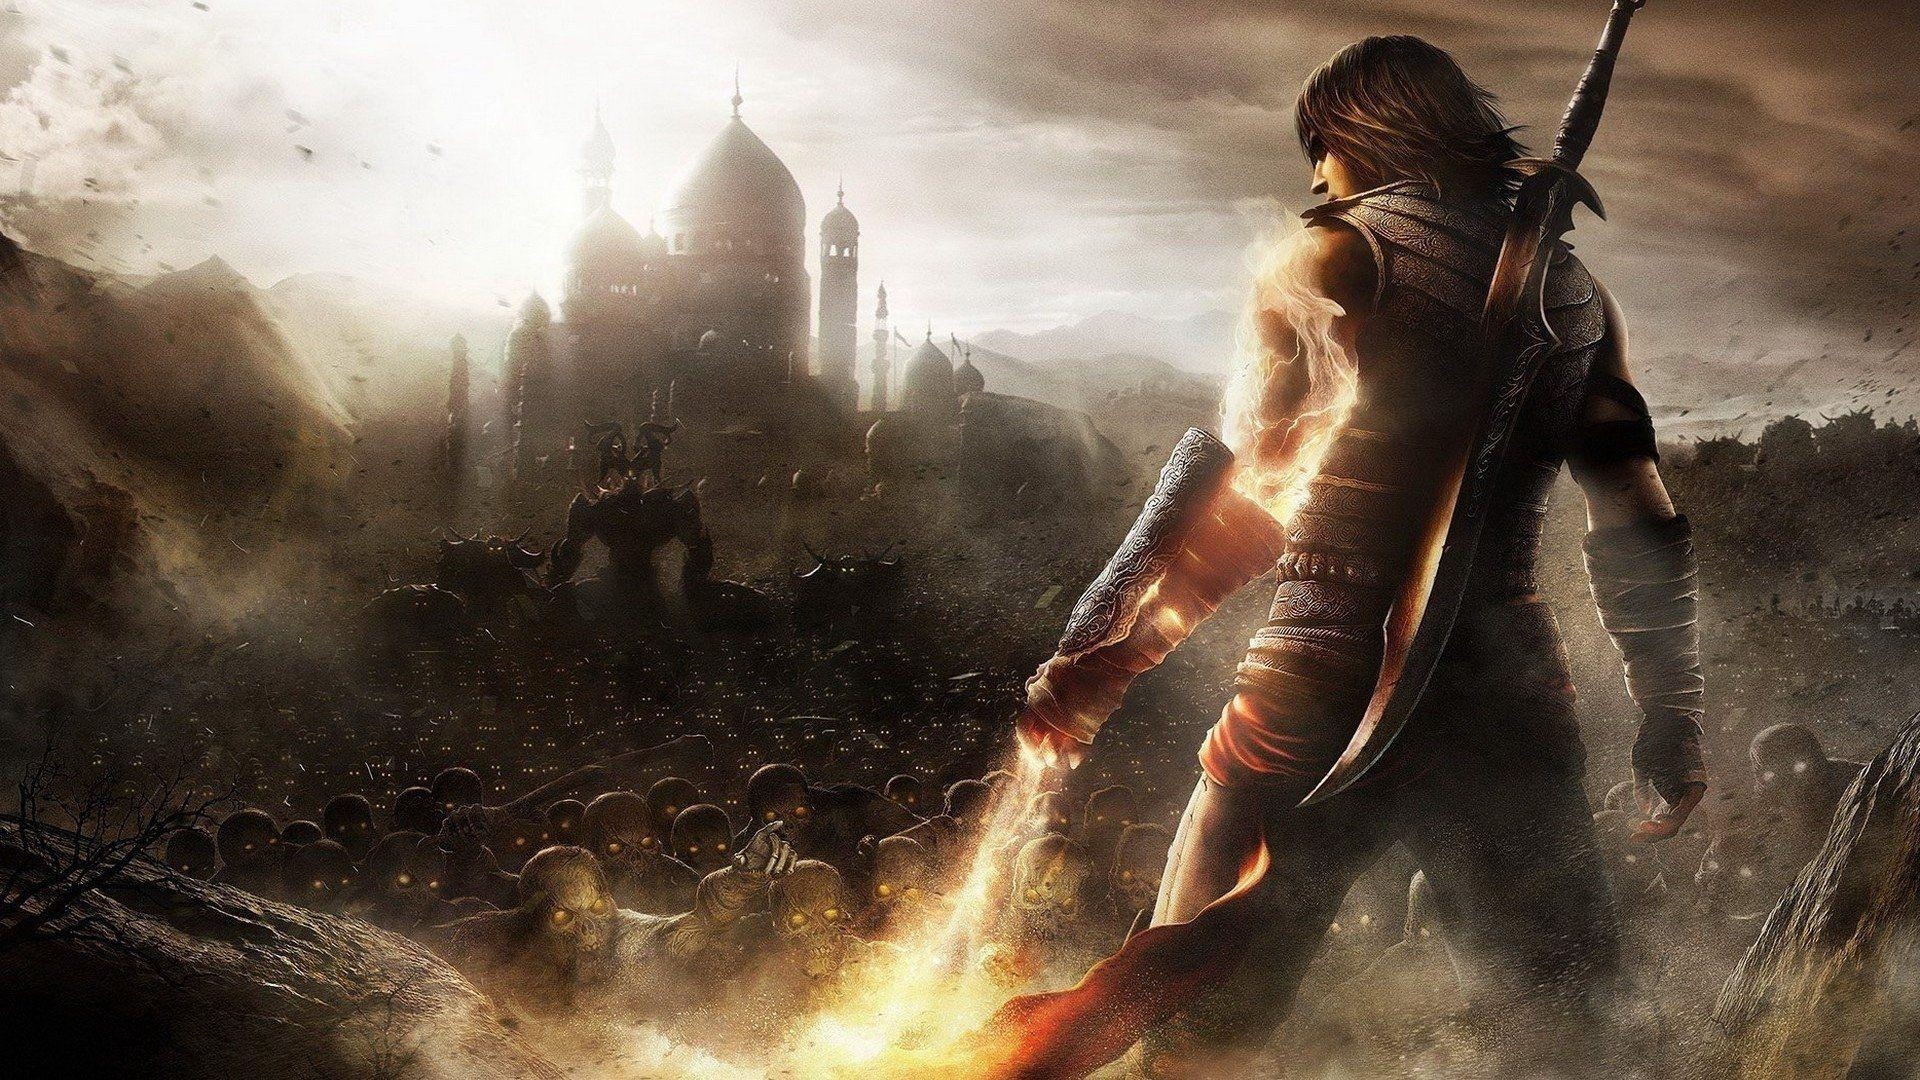 Prince Of Persia The Forgotten Sands Wallpapers Wallpaper Cave